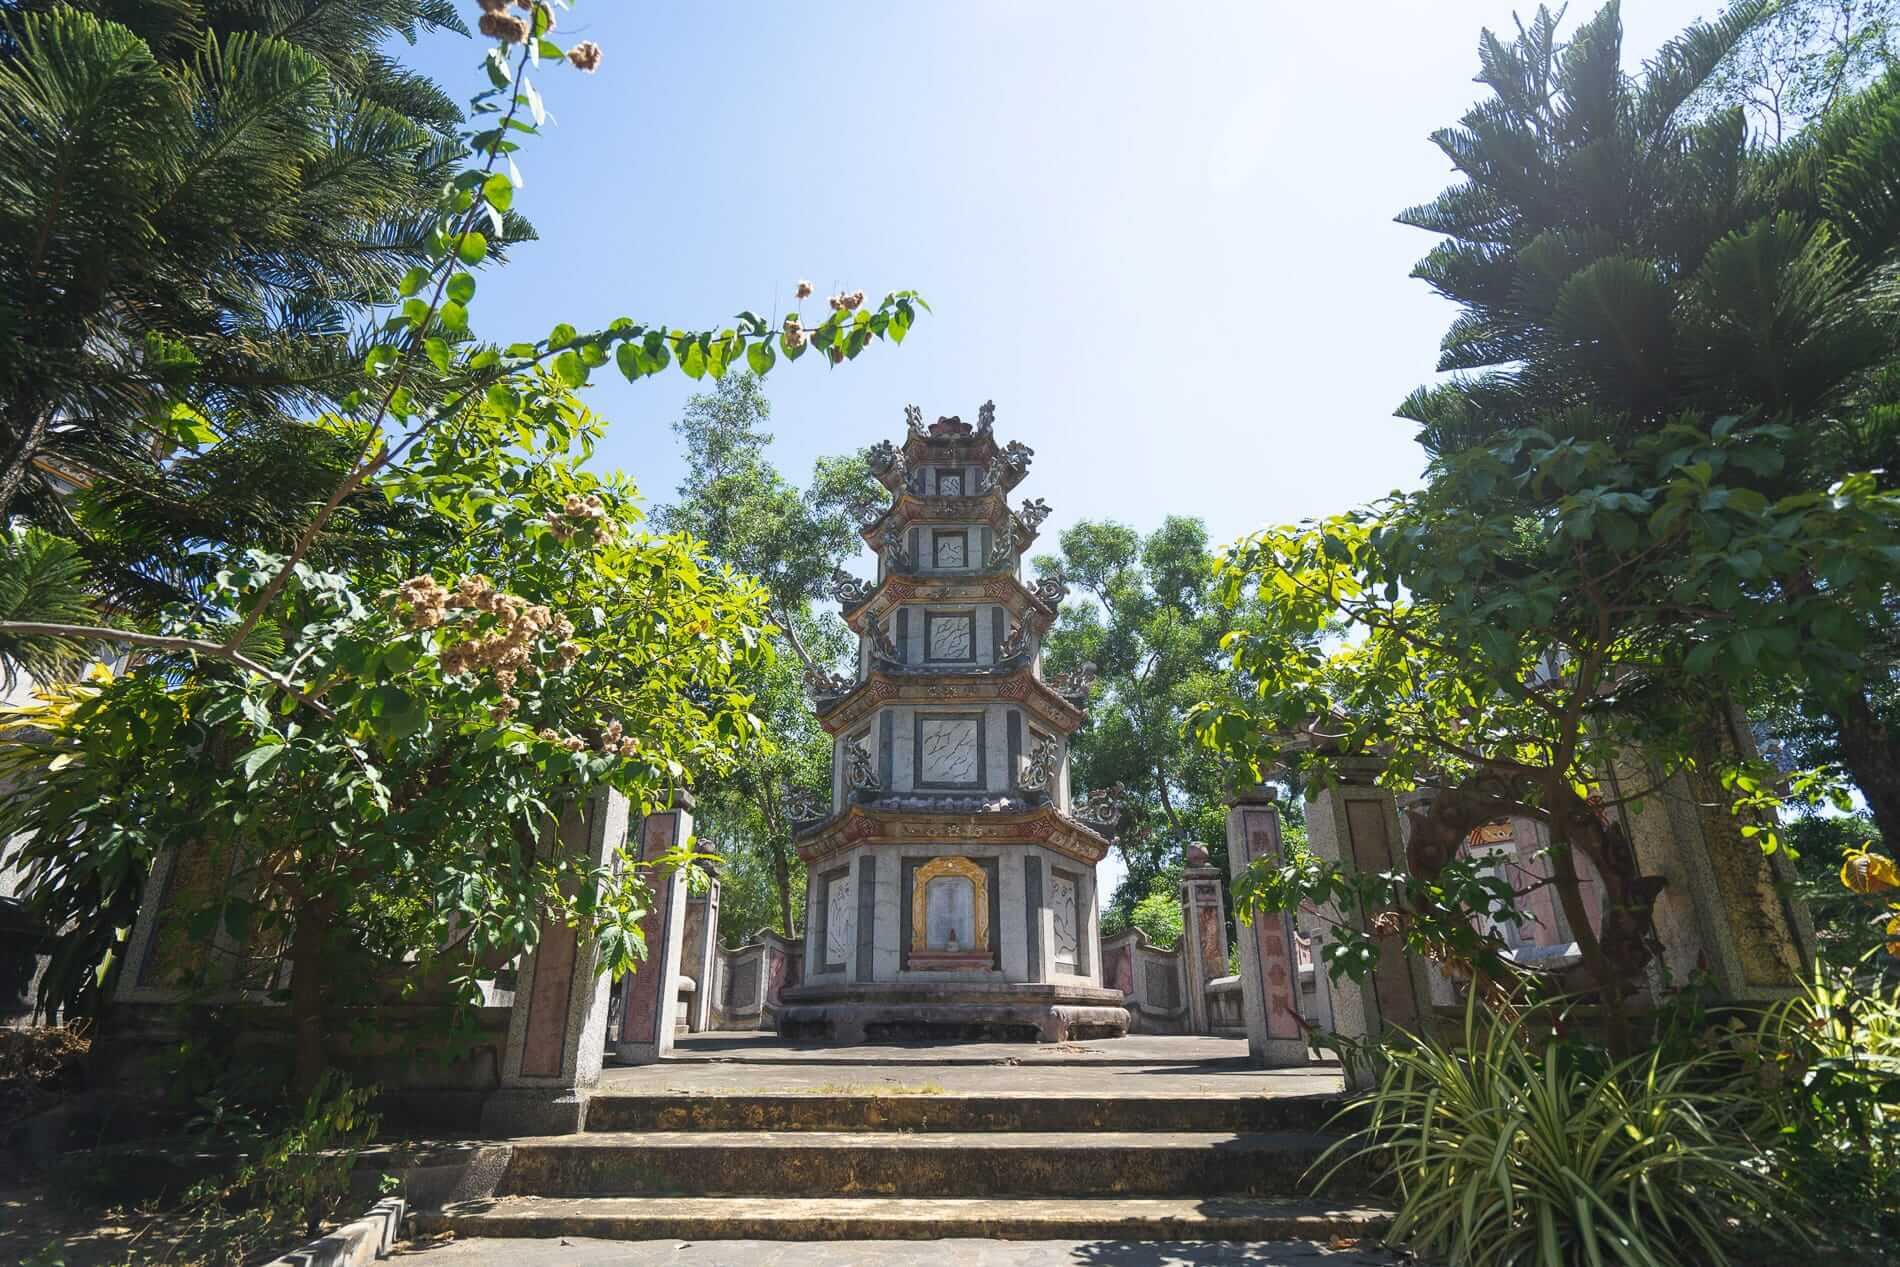 Tomb at the Chuc Thanh Pagoda - Hoi An Temples and Pagodas